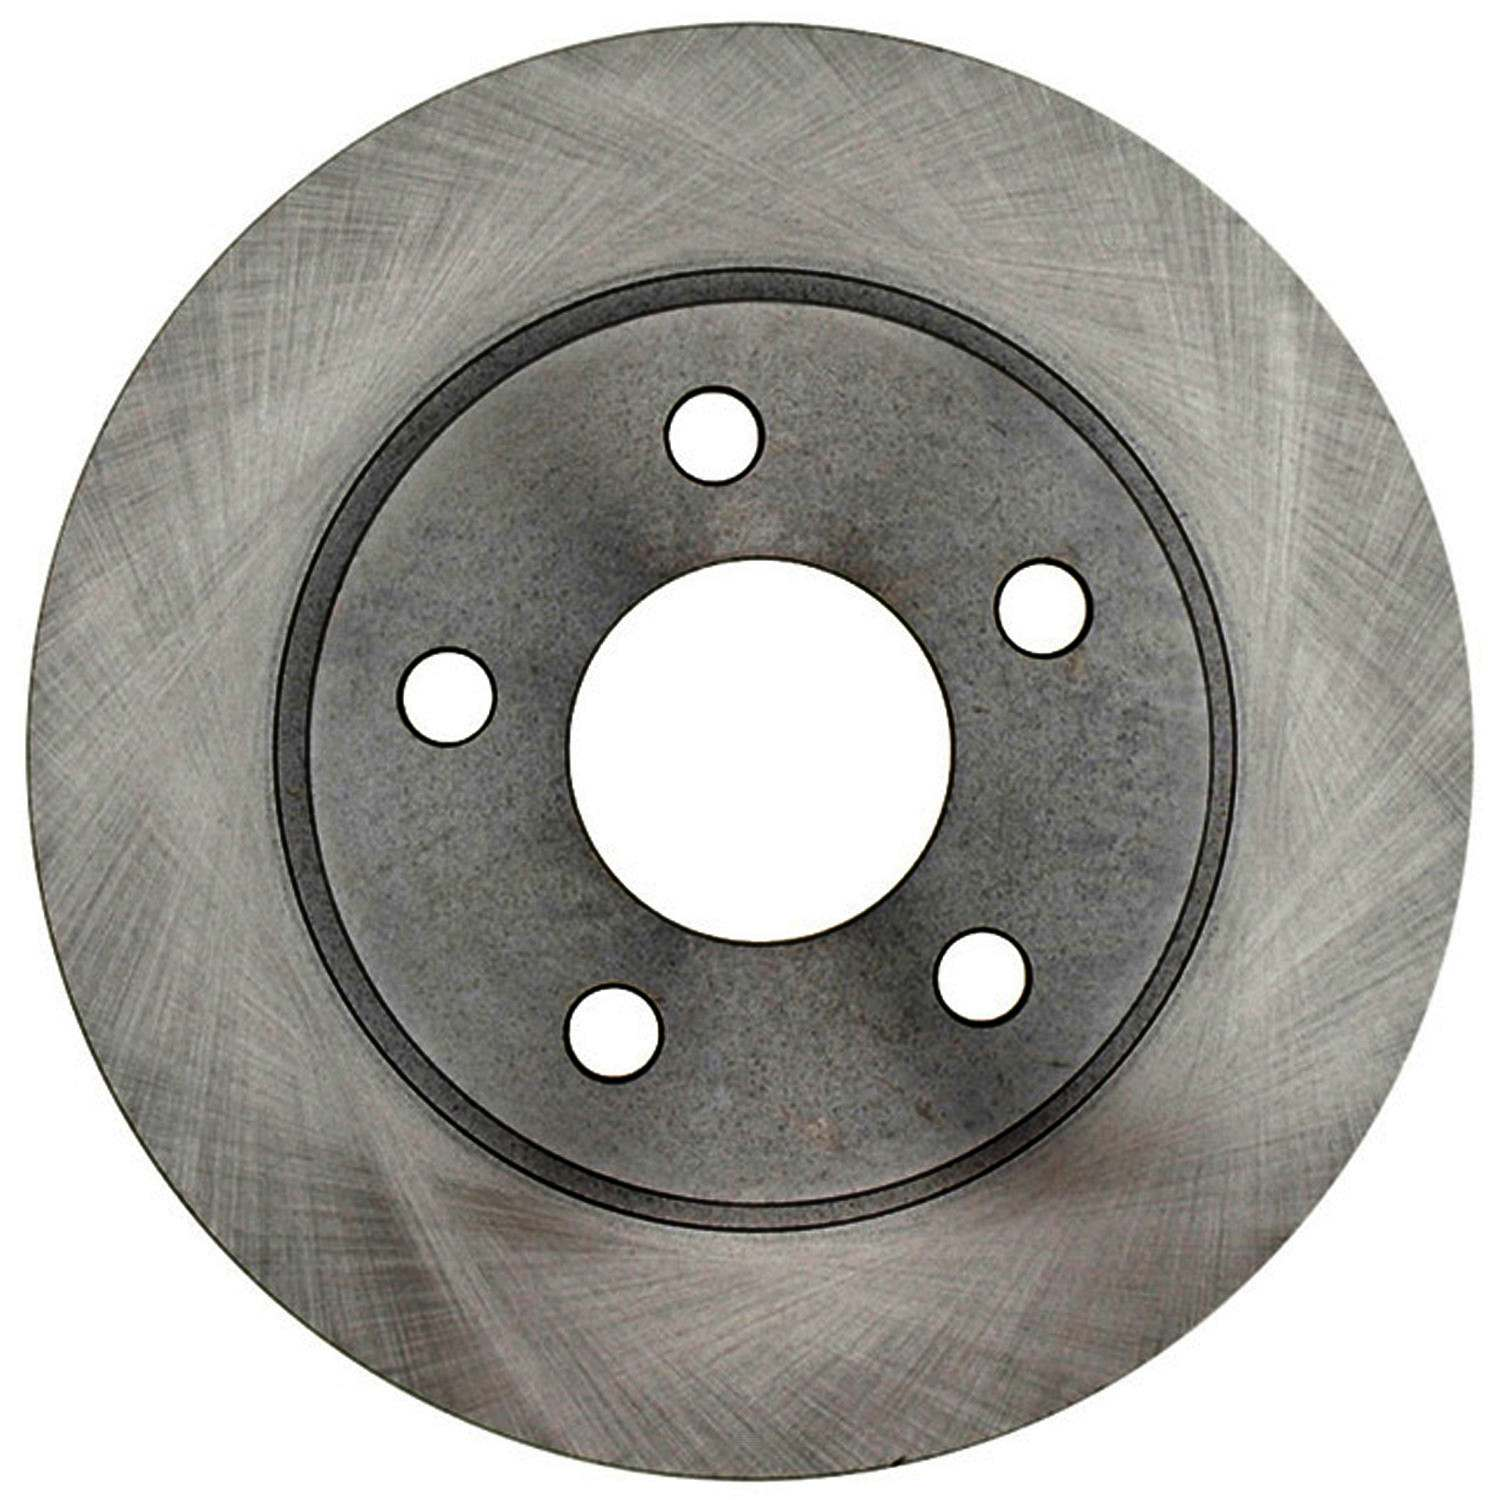 ACDELCO ADVANTAGE - Non-Coated Disc Brake Rotor - DCD 18A953A